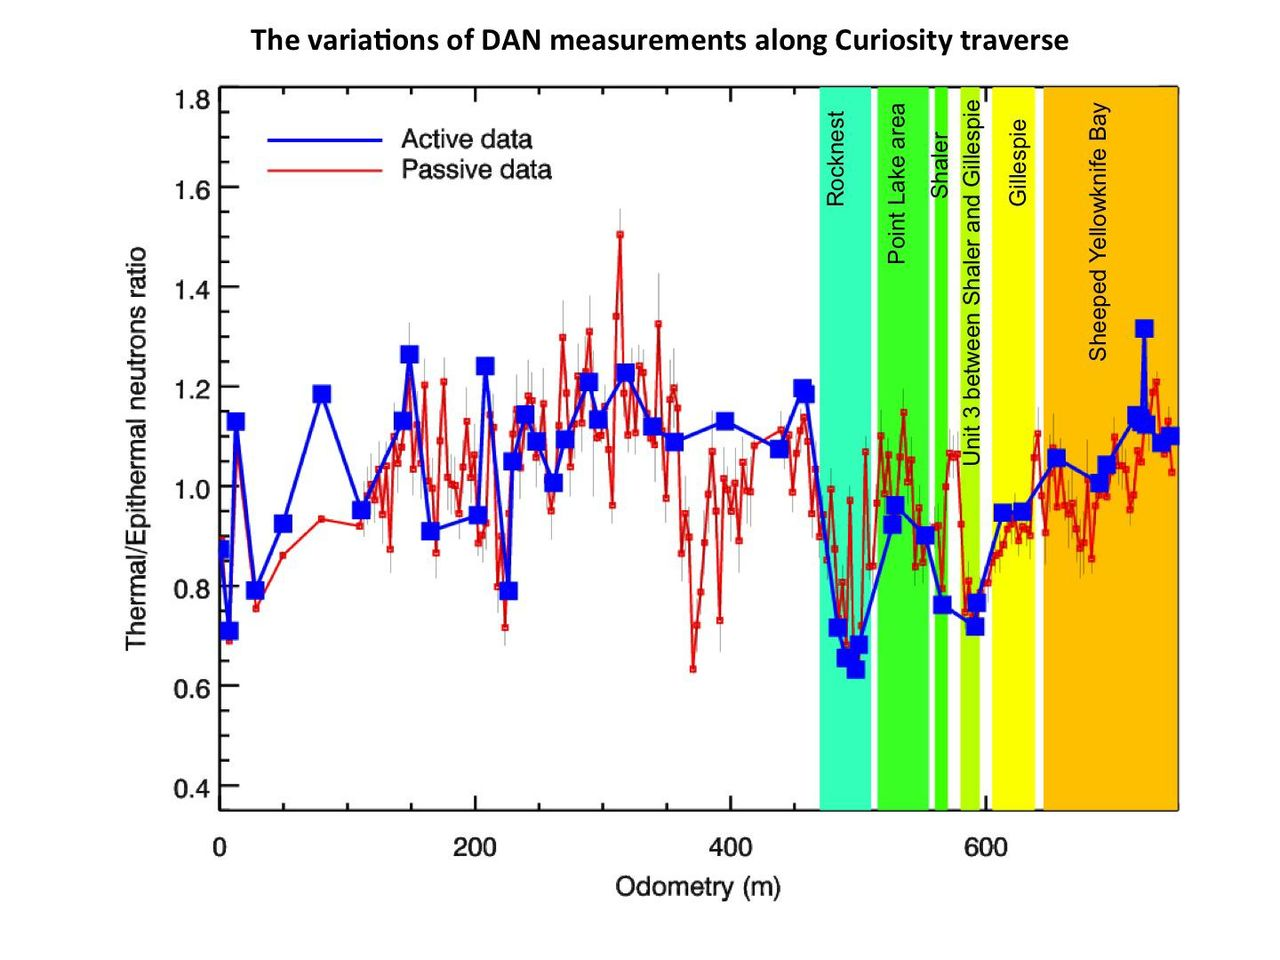 Trigger Point Charts: PIA16807-MarsCuriosityRover-DAN-Measurements-20130318.jpg ,Chart